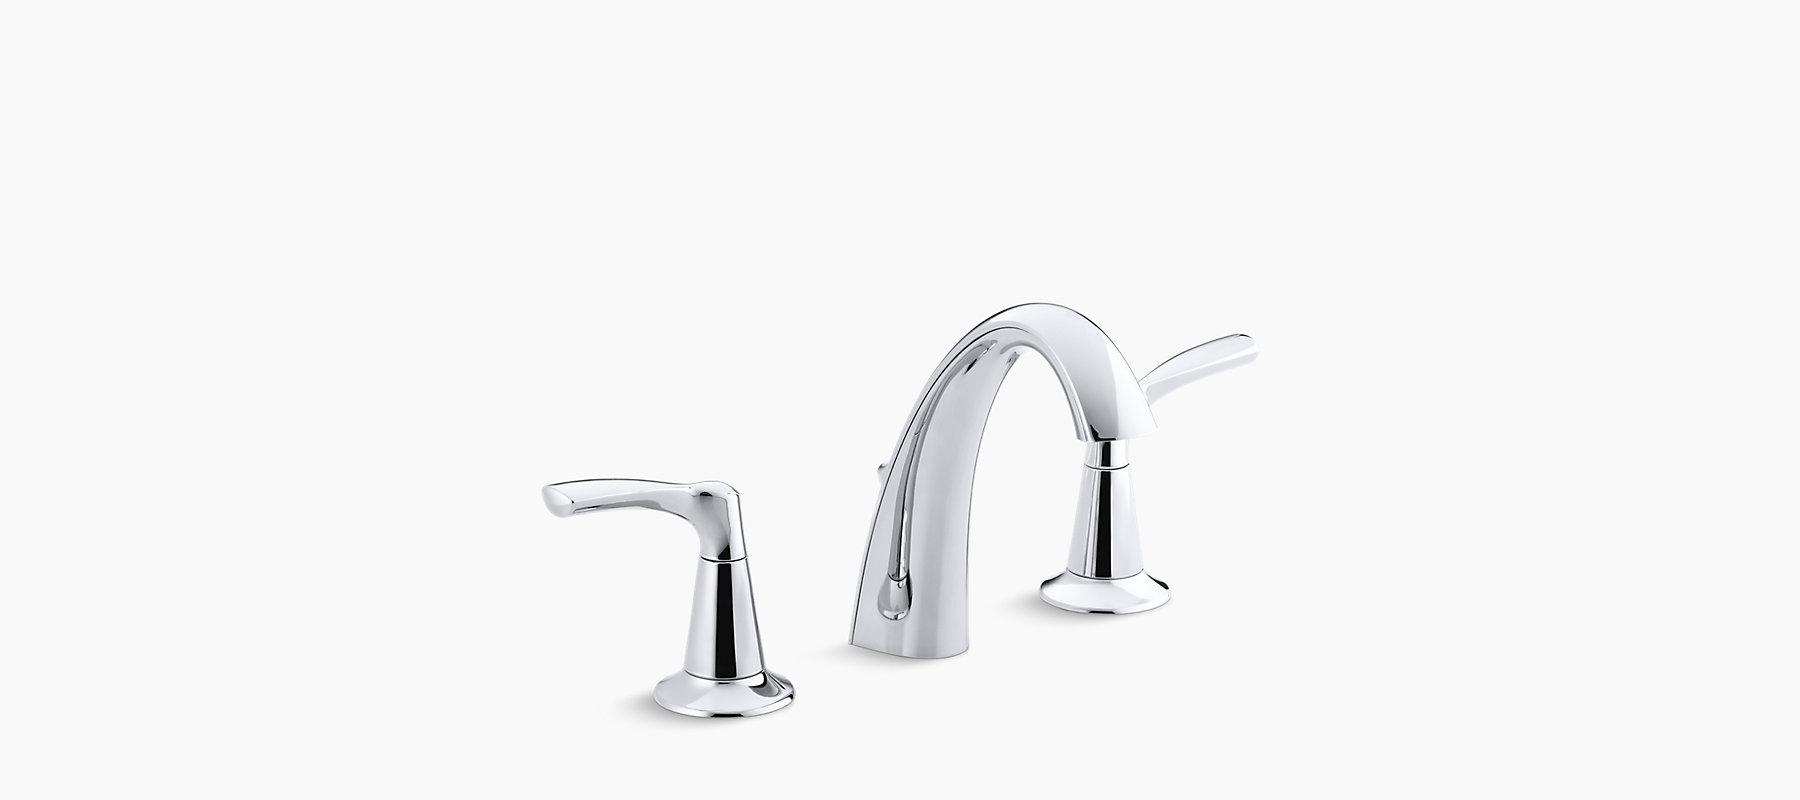 Mistos Widespread Bathroom Sink Faucet | K-R37026-4D | KOHLER